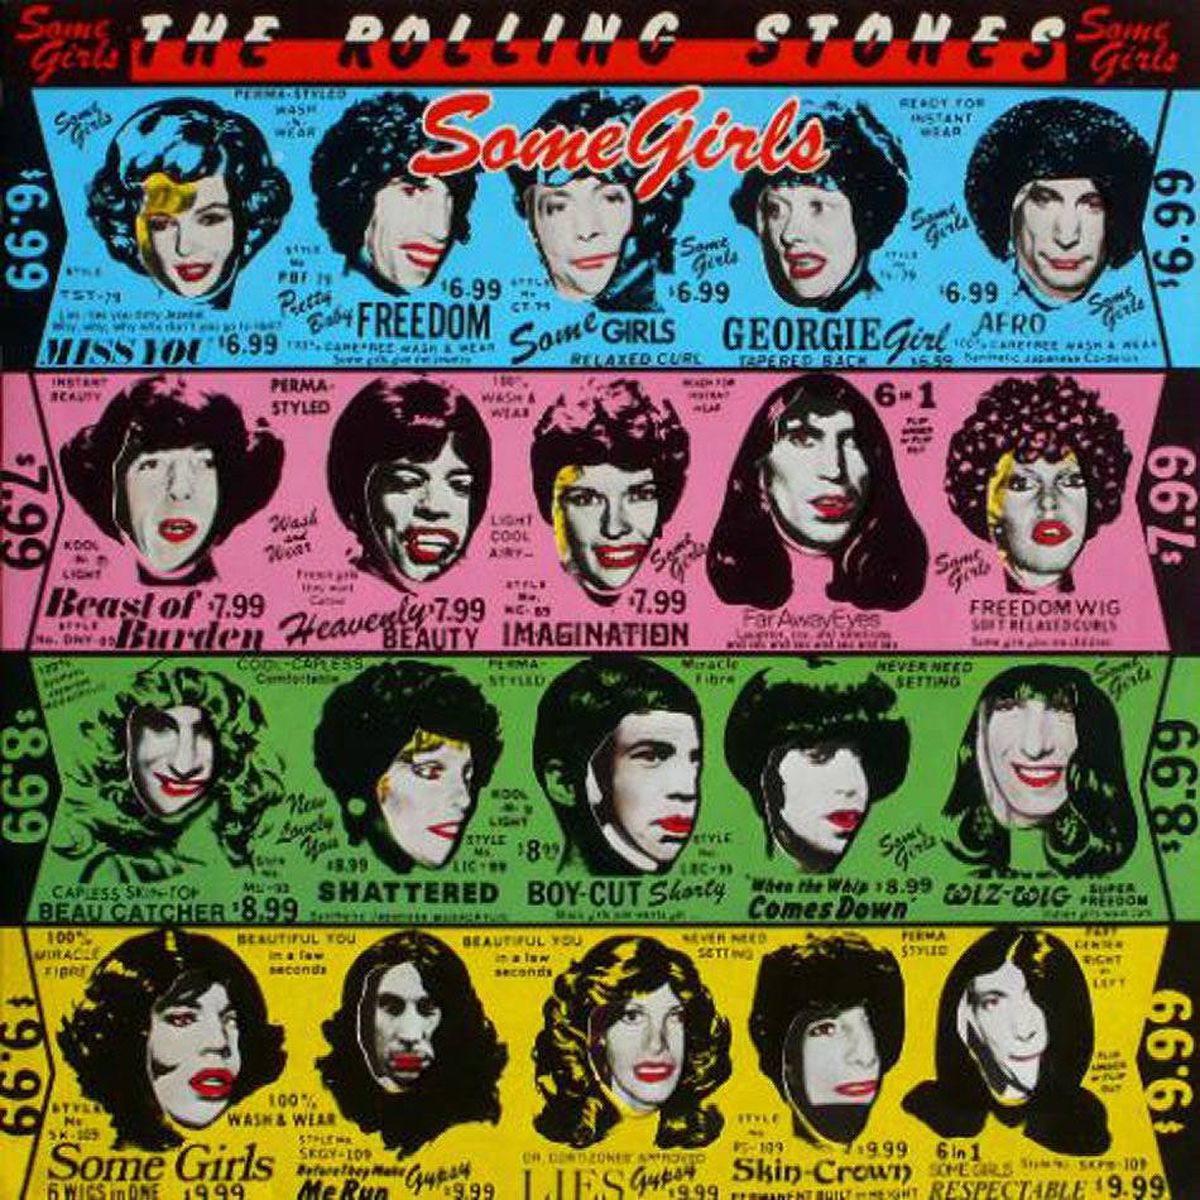 The Rolling Stones: Some Girls About the sinewy 1978 album, Keith Richards says in his autobiography that 'You can't argue with seven million copies and two top singles out of it, Miss You and Beast of Burden.' Neither can you argue with a lavish reissue that includes updated rare cuts from the vault and a concert DVD from the era. We might also suggest: Bob Marley and the Wailers' Love Forever, an in-depth package of the band's final concert, in Pittsburgh, 1980.